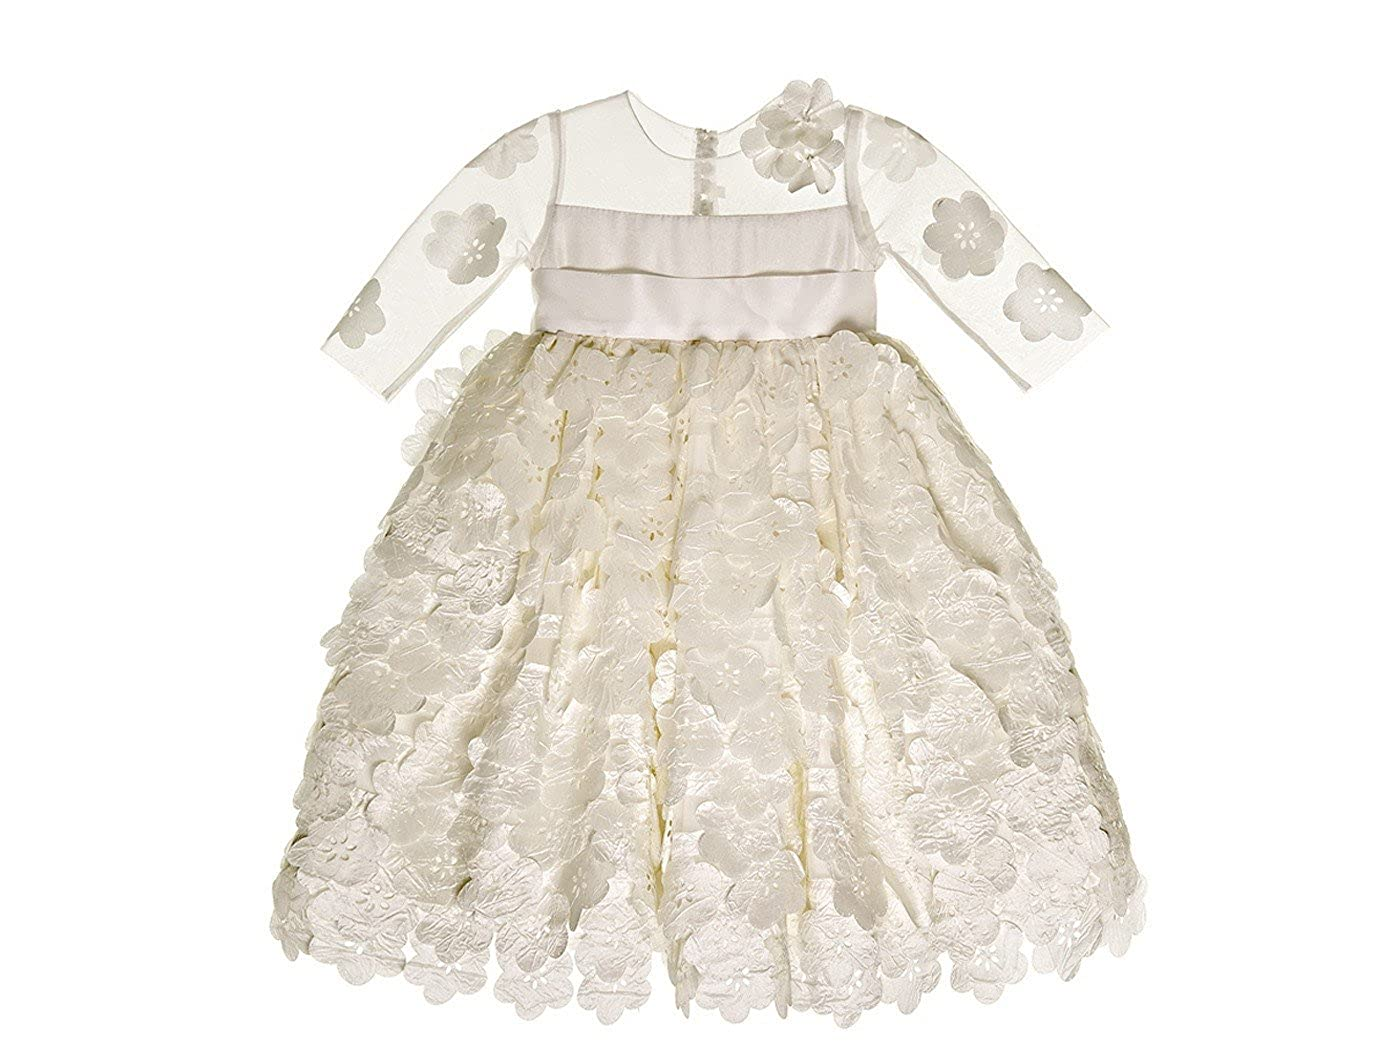 Kelaixiang Jewel 3//4 Sleeves Baytism Dress Applique Cute White